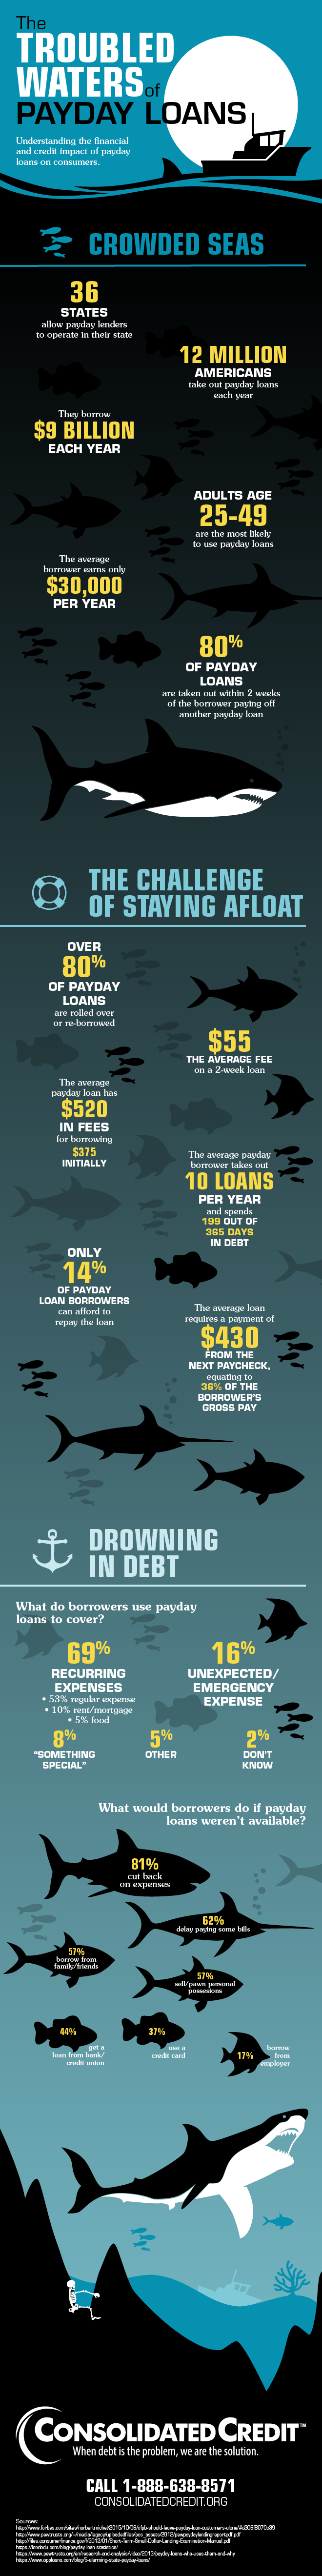 Consolidated Credit's payday loan infographic